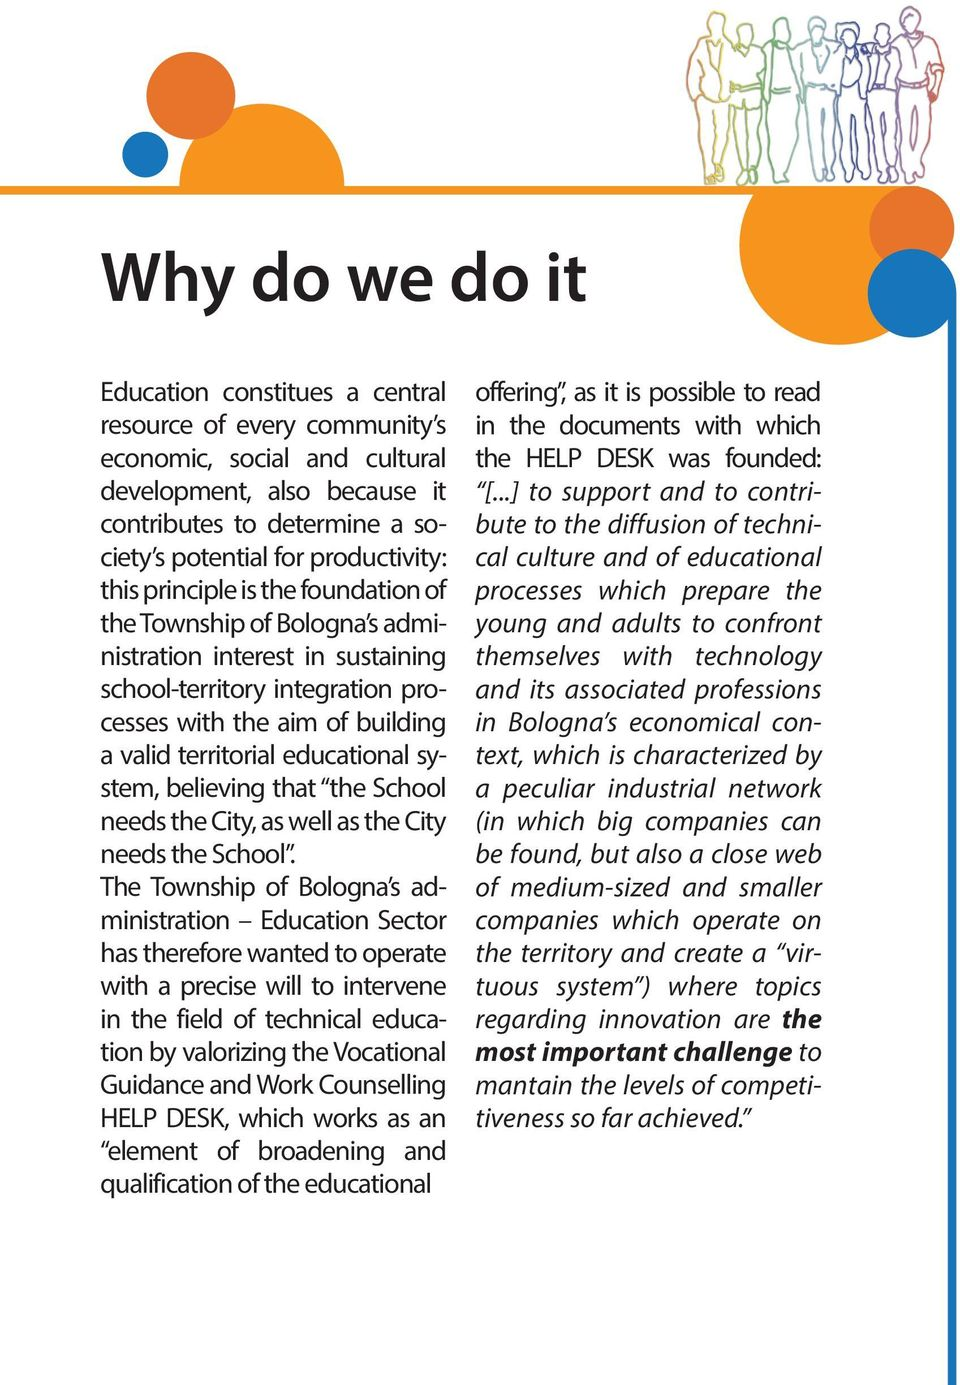 educational system, believing that the School needs the City, as well as the City needs the School.